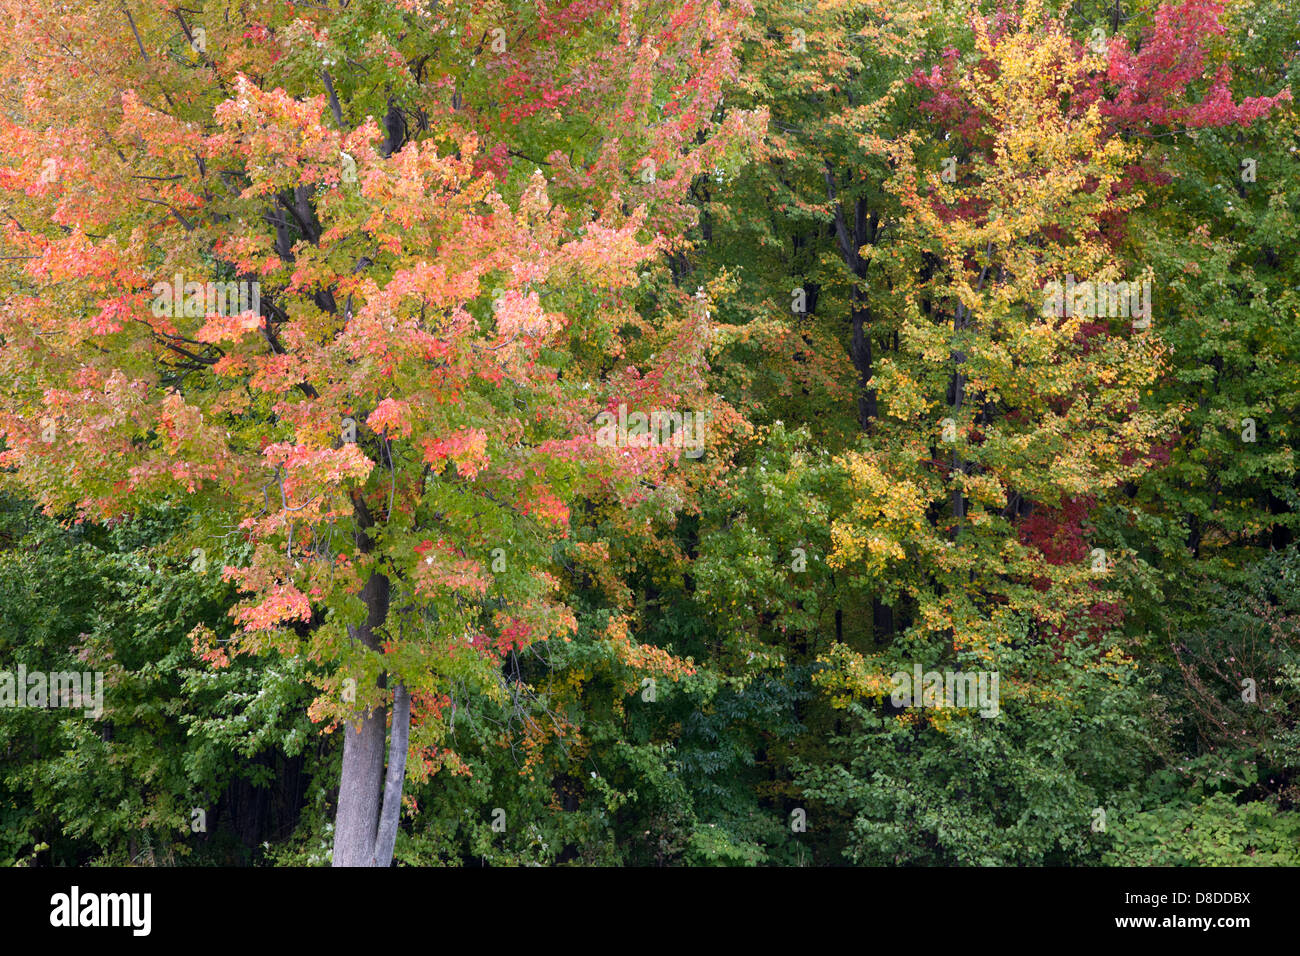 Maple tree in fall colours - Stock Image